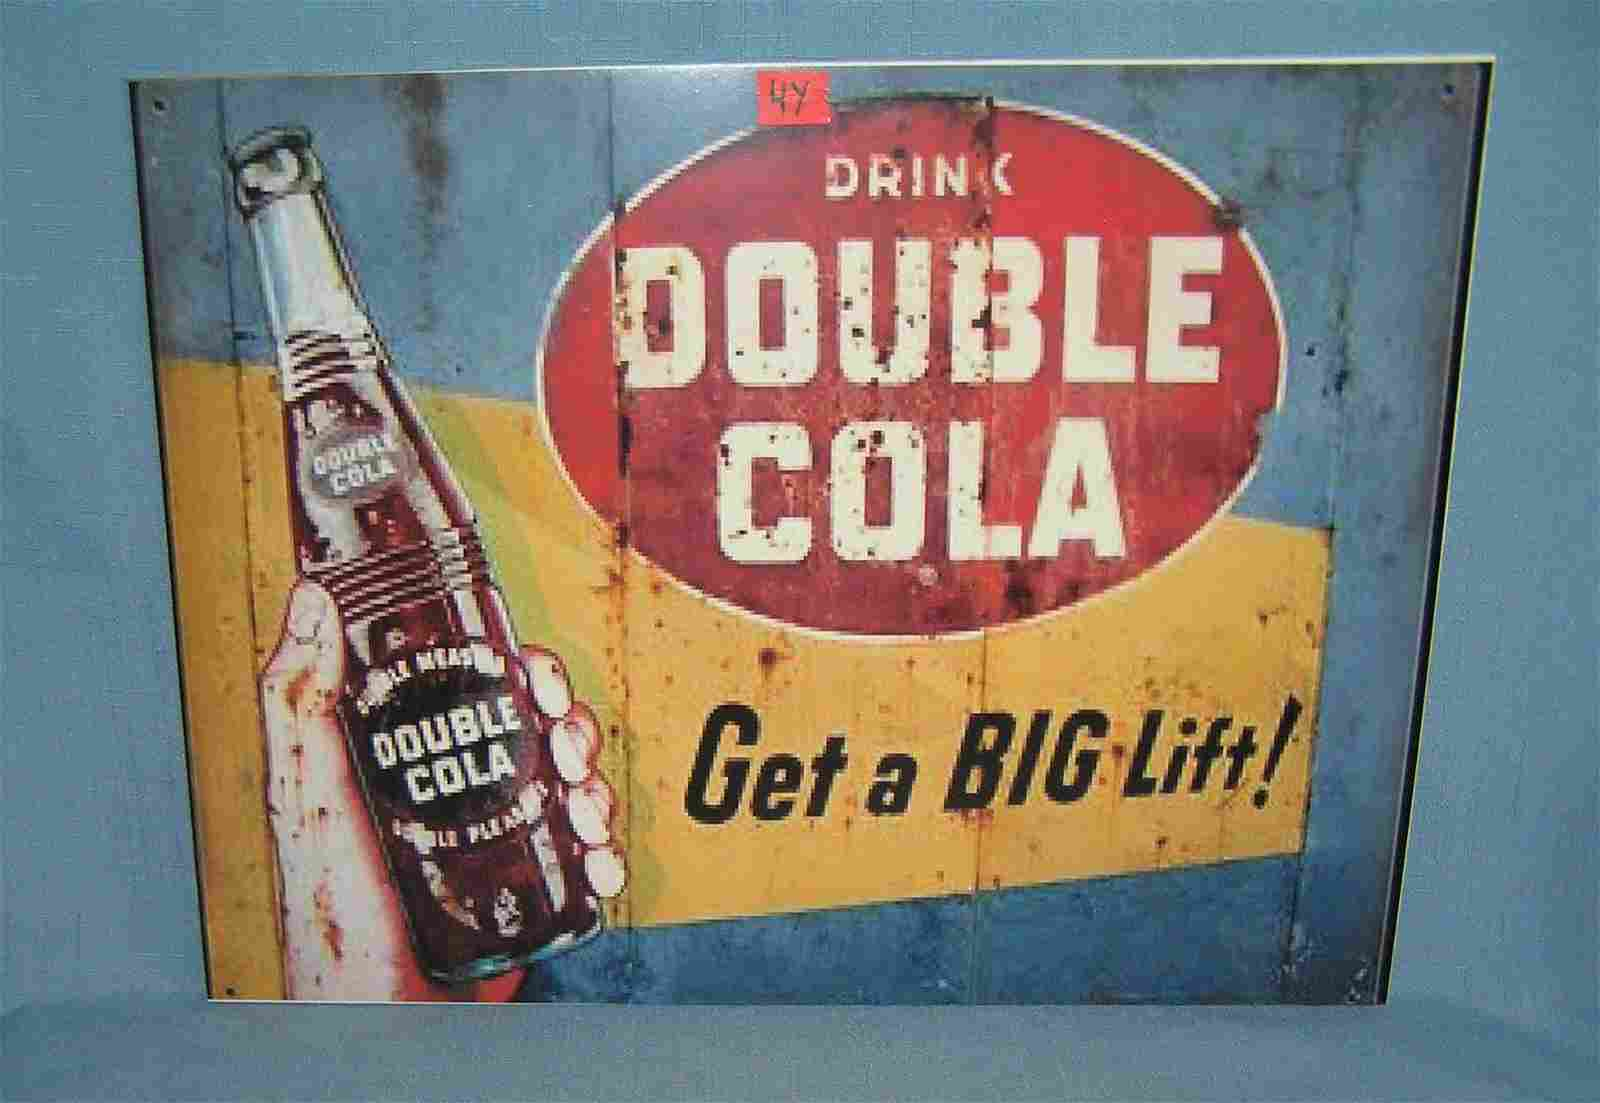 Drink Double Cola retro style advertising sign